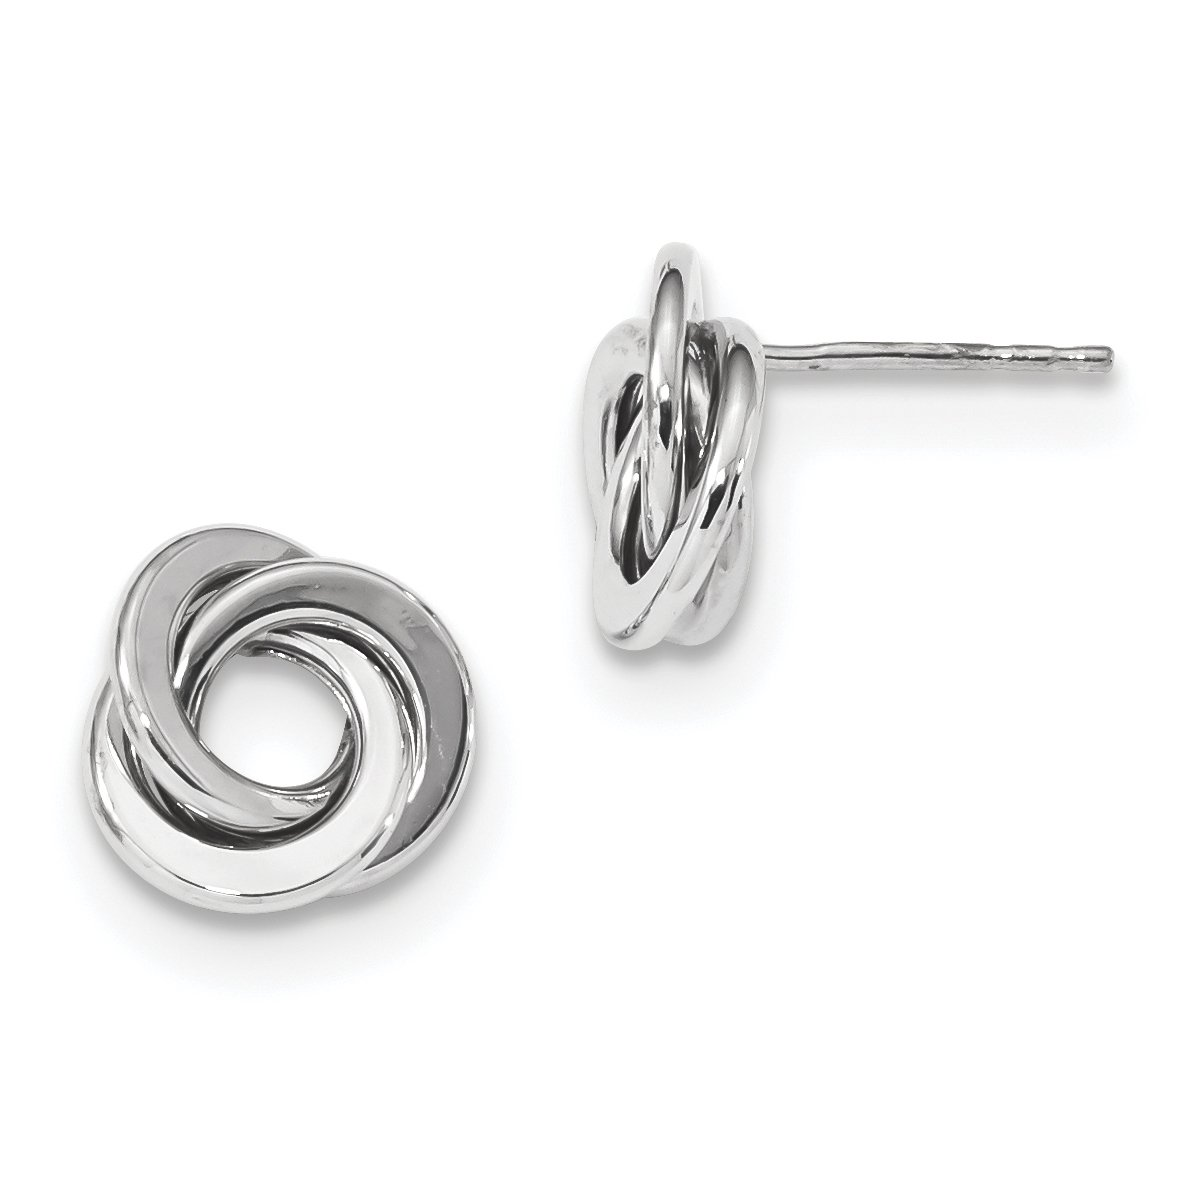 ICE CARATS 14k White Gold Love Knot Post Stud Ball Button Earrings Fine Jewelry Gift For Women Heart